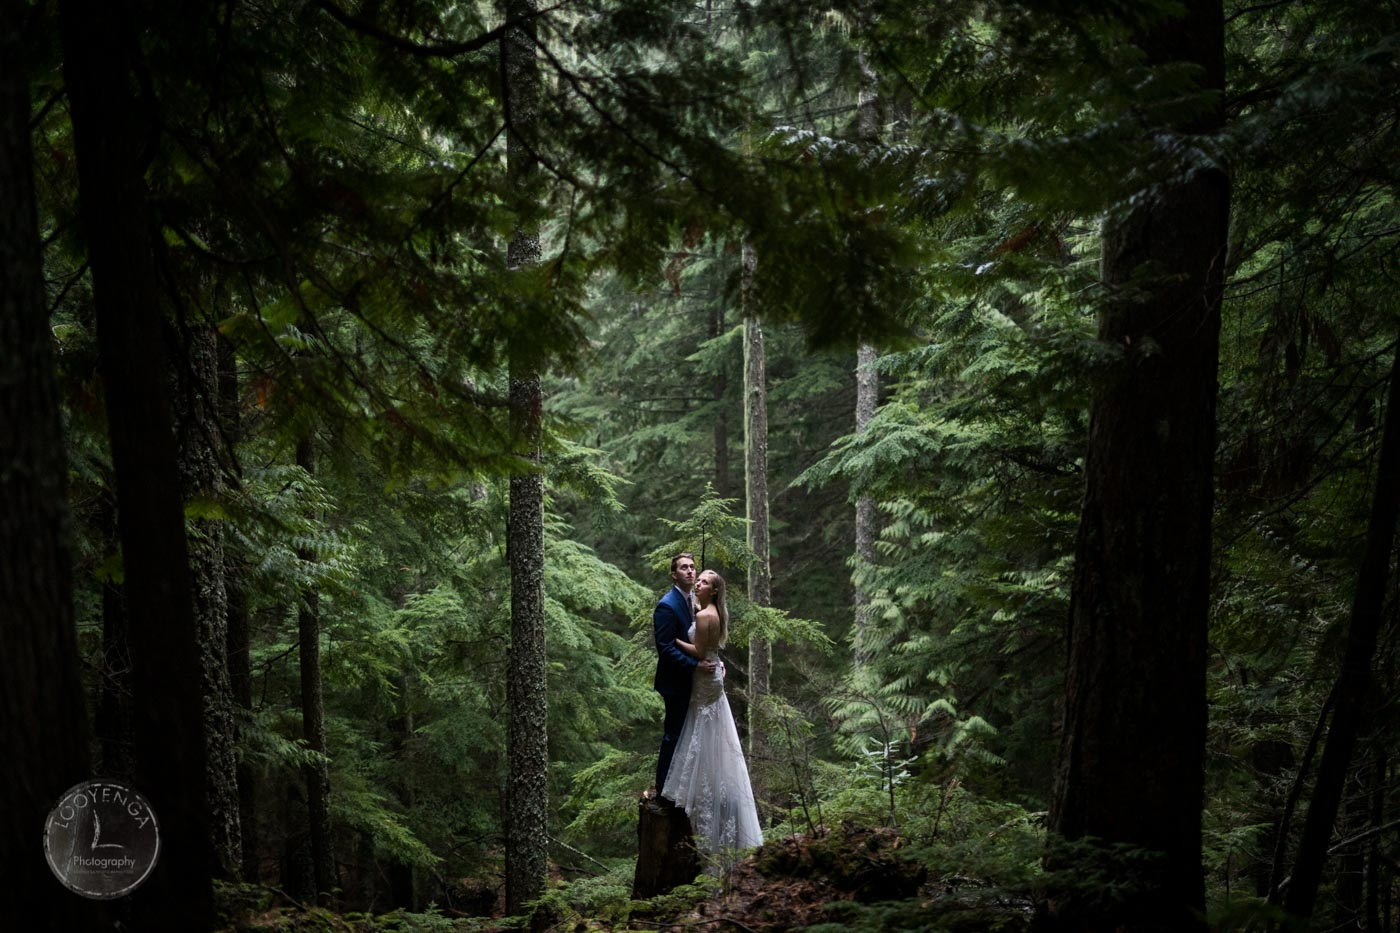 A bride and groom holding each other for a pose amidst a forest